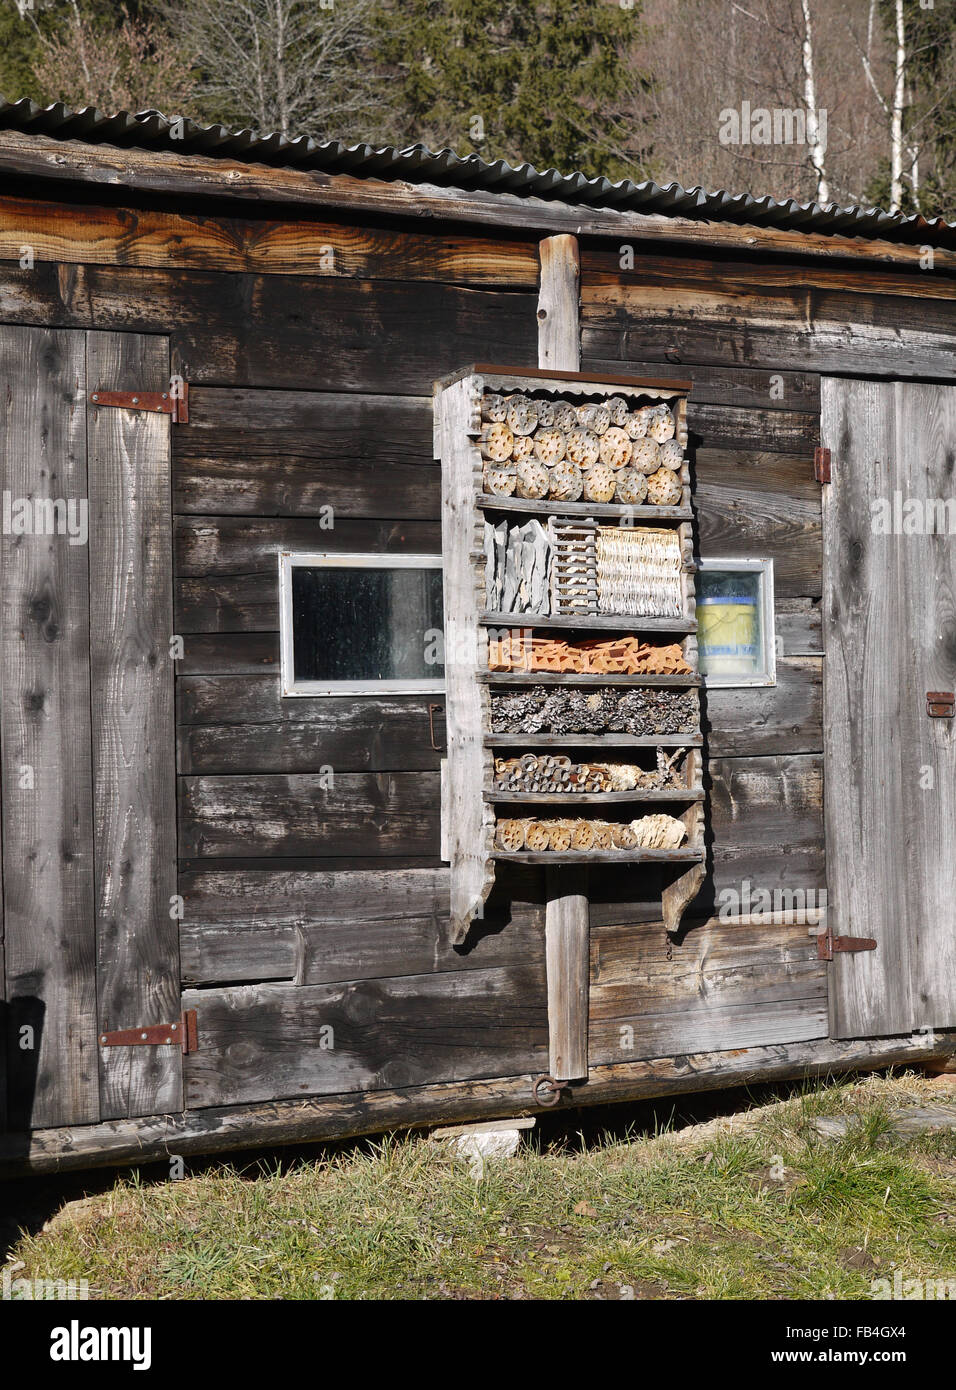 Example of an insect house made by a local artisan Bois in Le Crot, Vallorcines in France - Stock Image